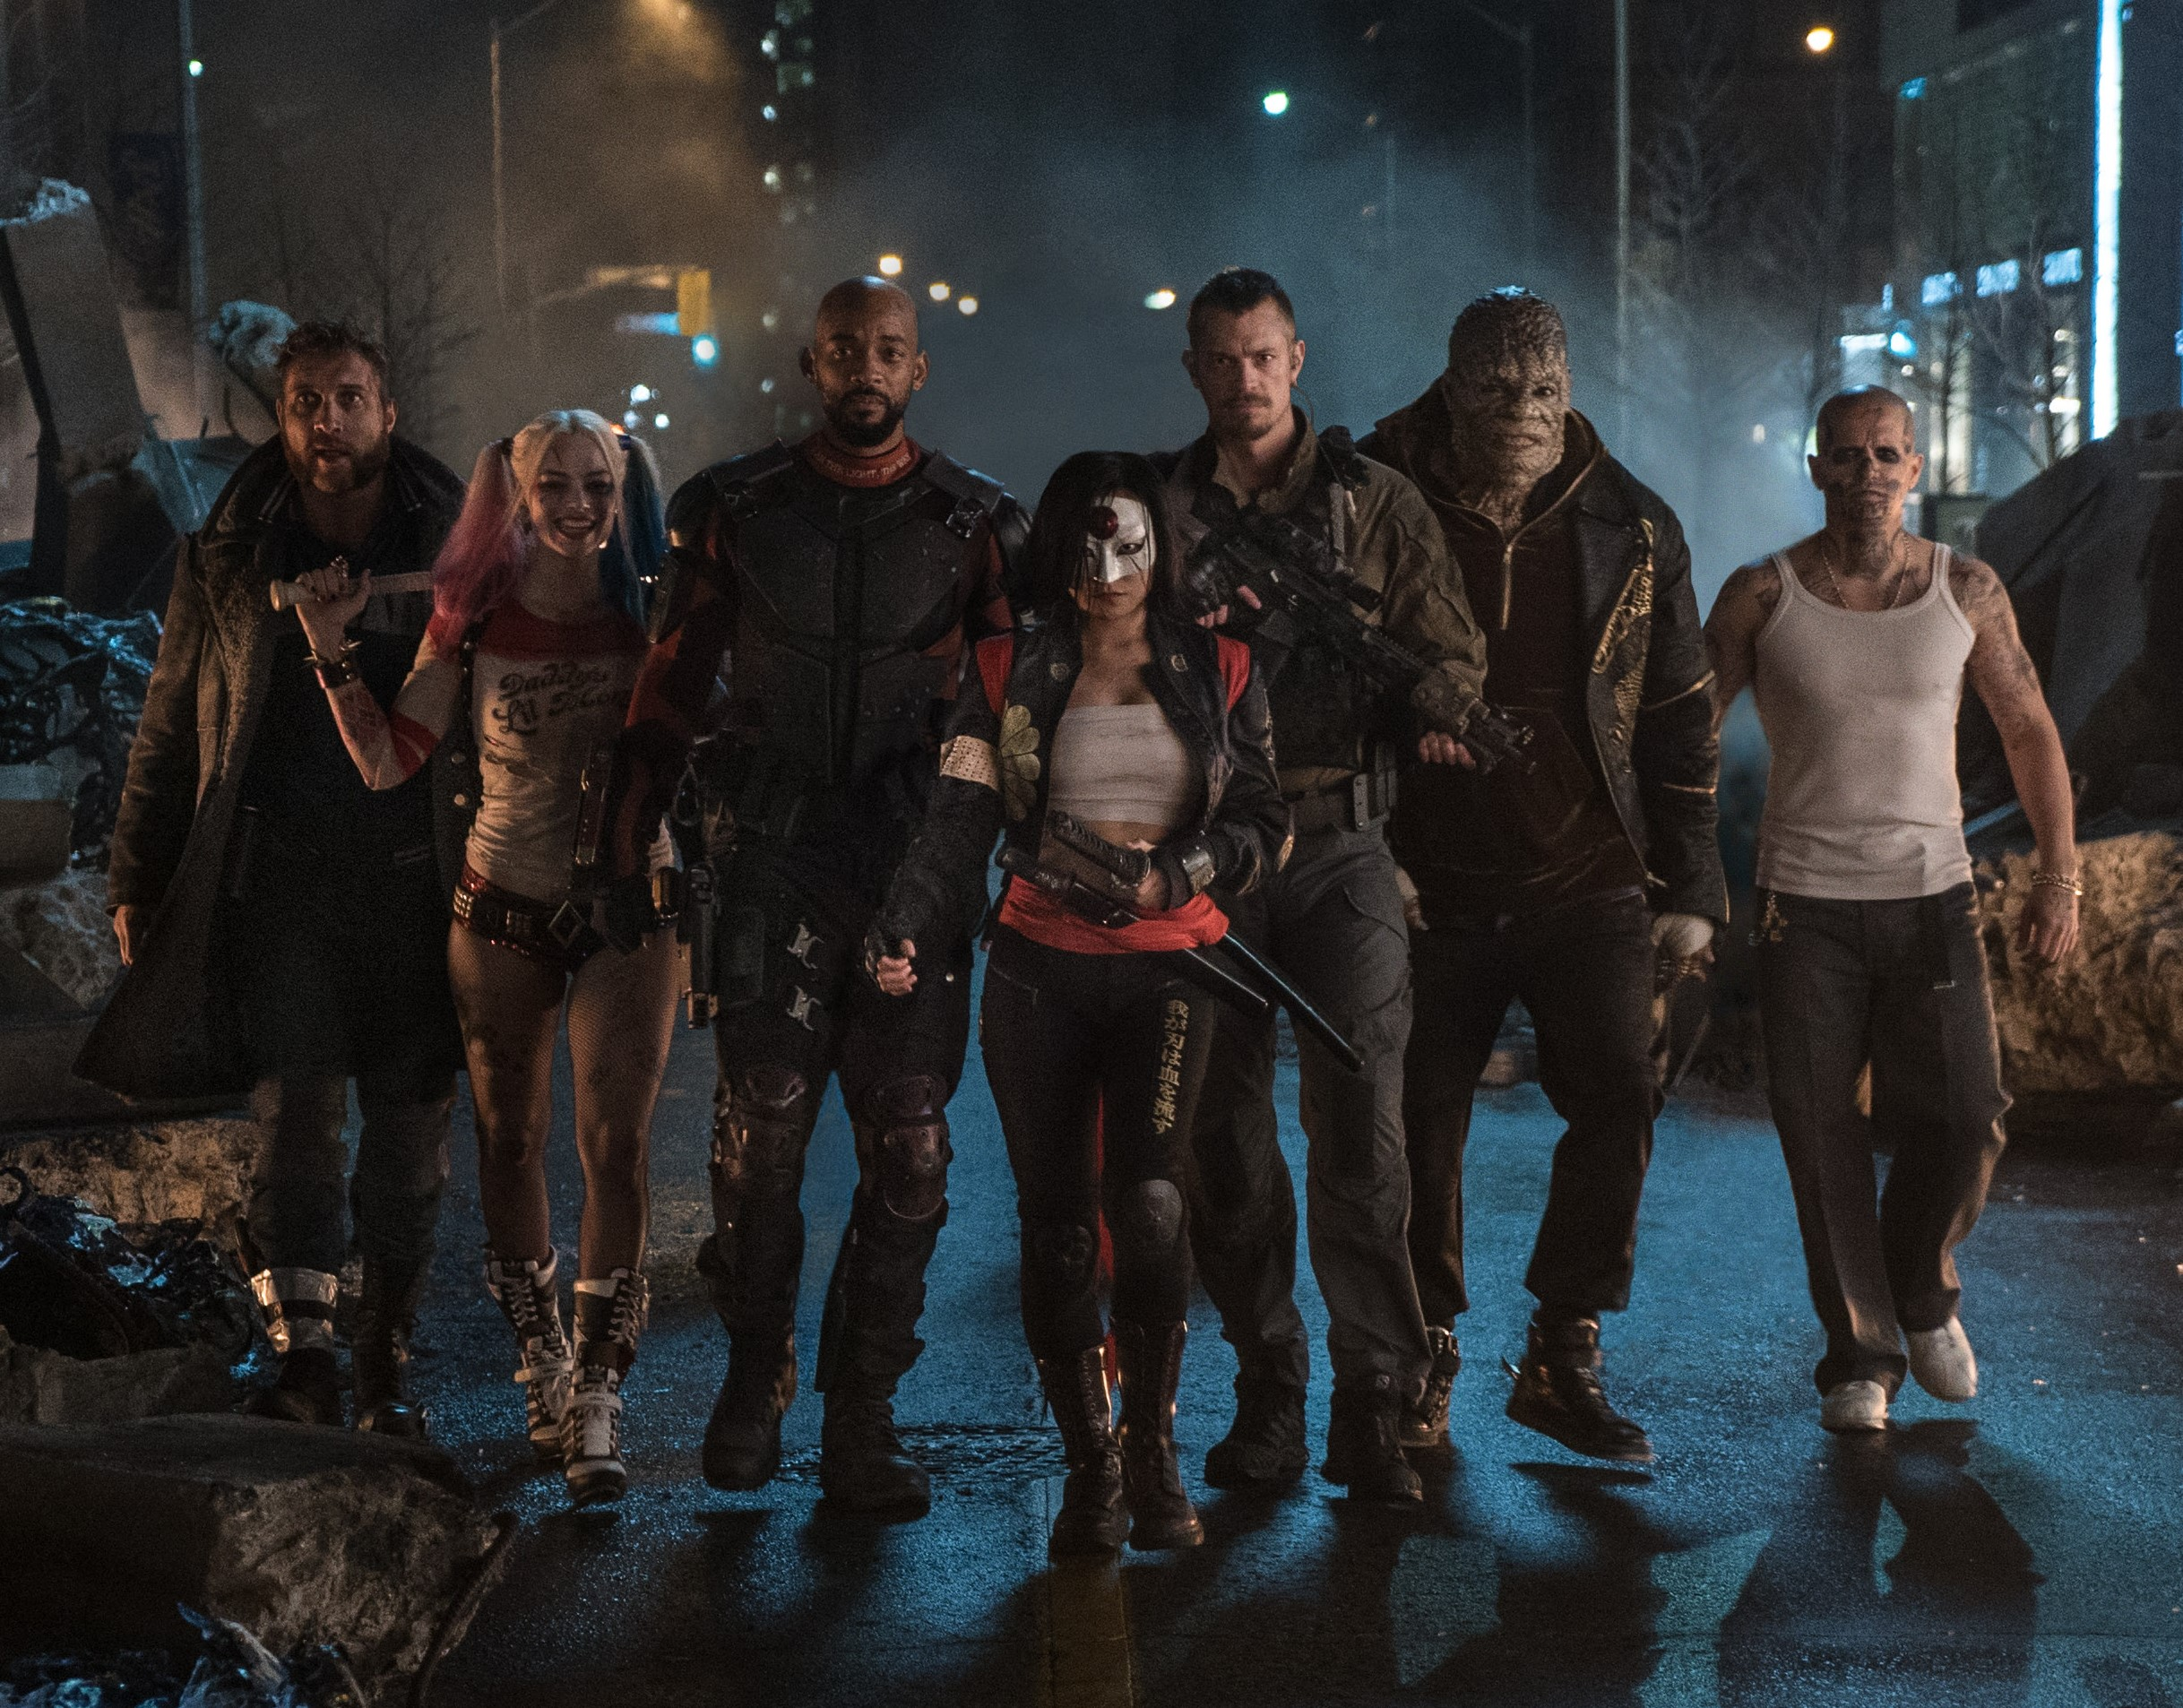 The 'Suicide Squad' out on foot patrol. (L-r) Jai Courtney as Boomerang, Margot Robbie as Harley Quinn, Will Smith as Deadshot, Karen Fukuhara as Katana, Joel Kinnaman as Rick Flag, Adewale Akinnuoye-Agbaje as Killer Croc, and Jay Hernandez as Diablo. Photo Credit: Clay Enos/ TM & (c) DC Comics.